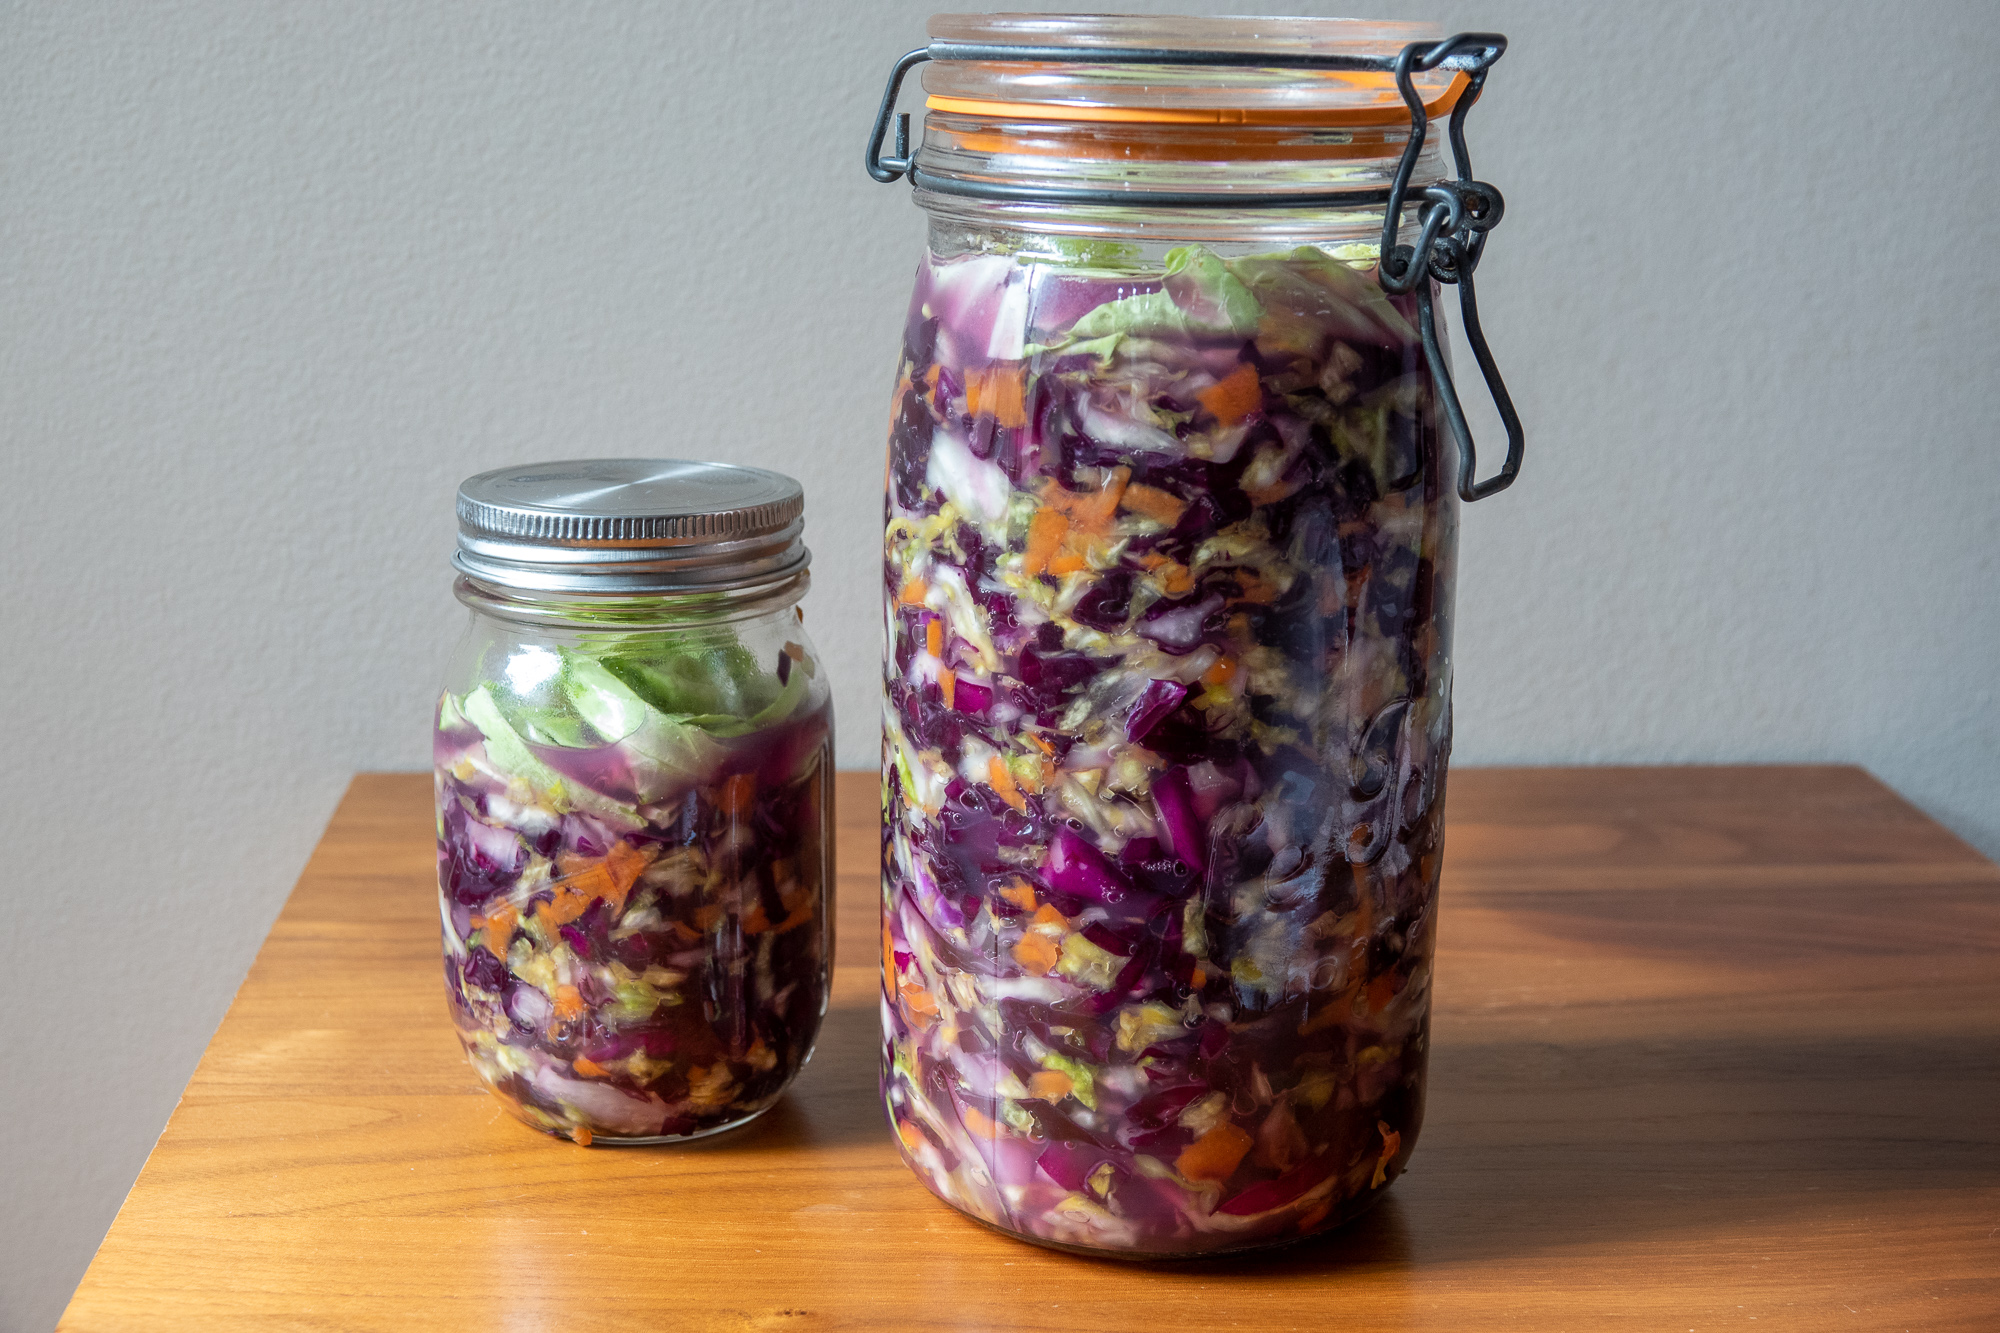 Sauerkraut in jars on table.